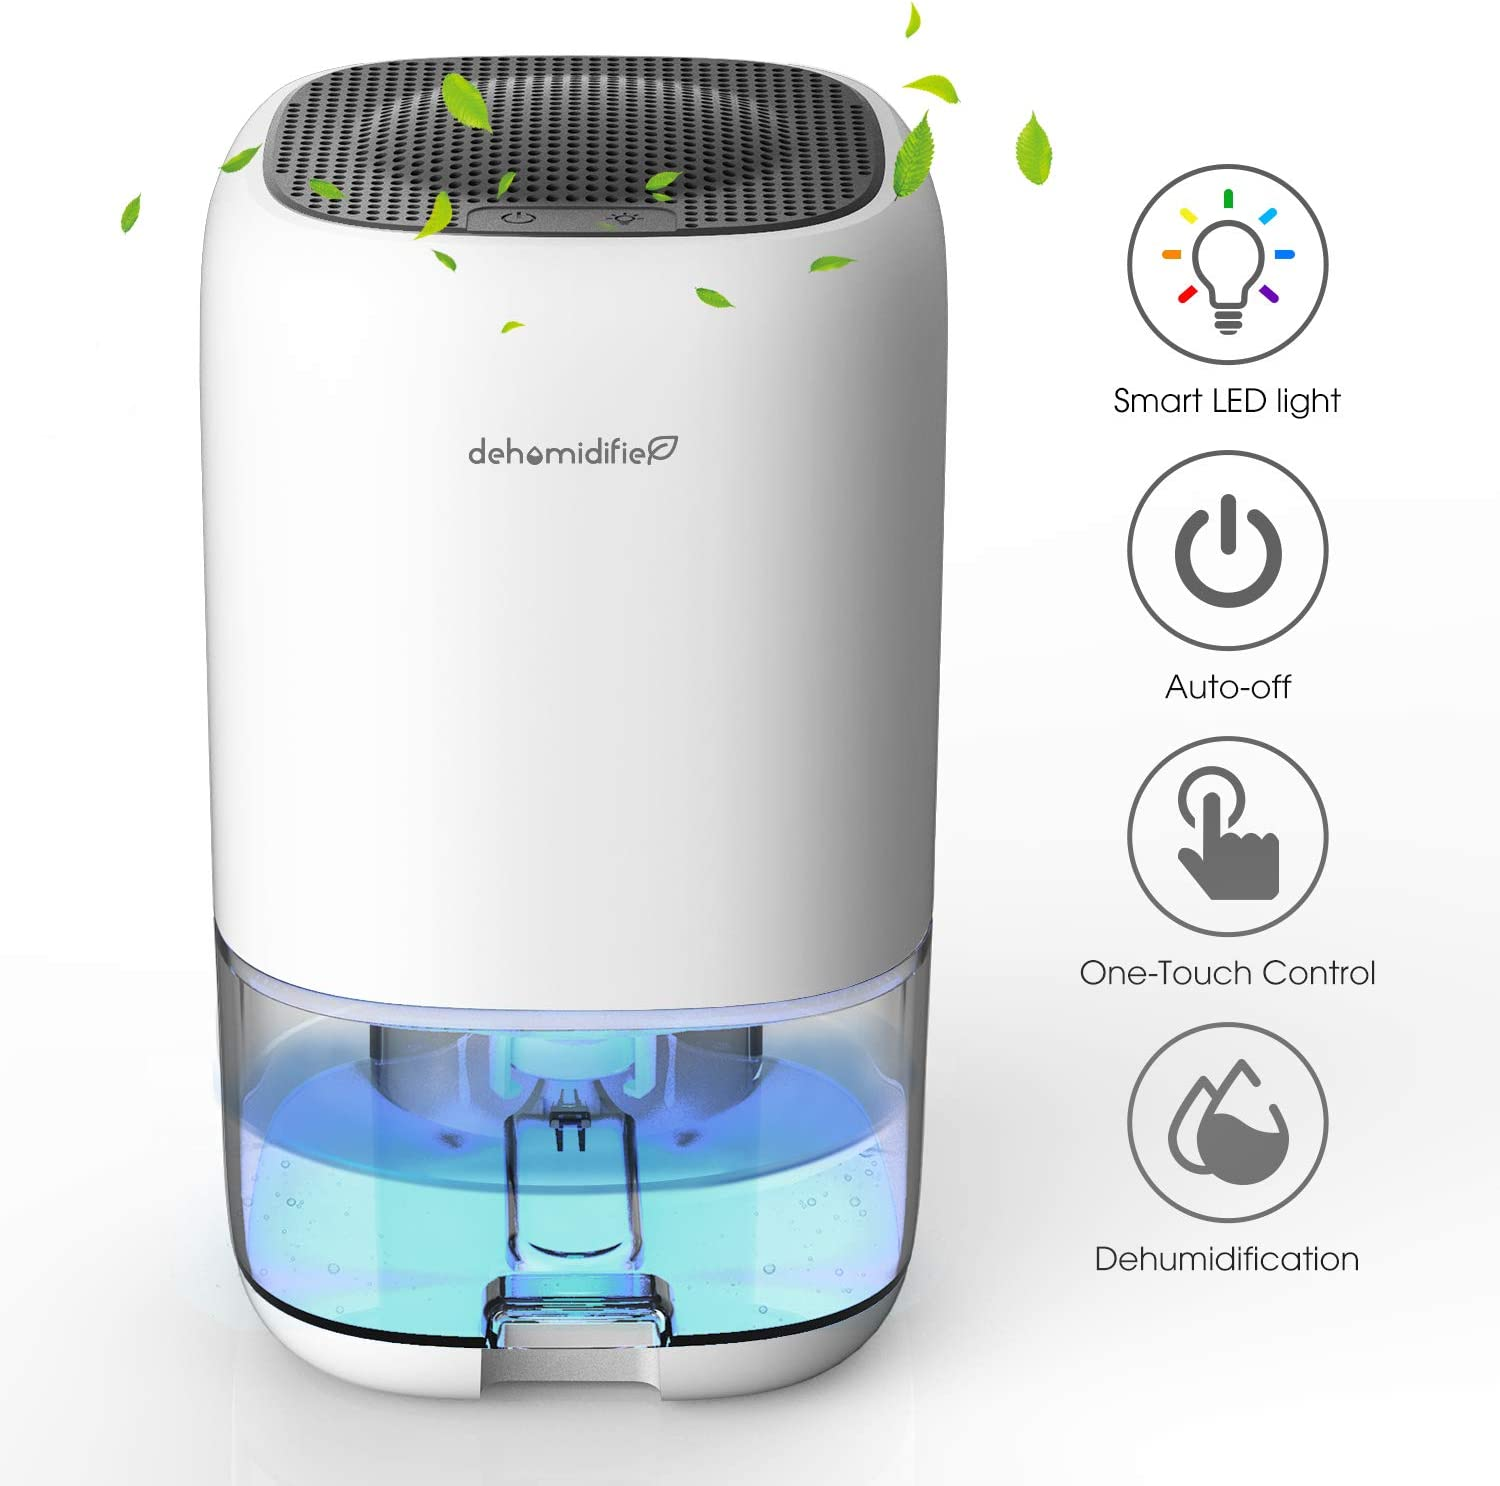 ALROCKET Dehumidifier 35 Review: Air Cleaning From A to Z